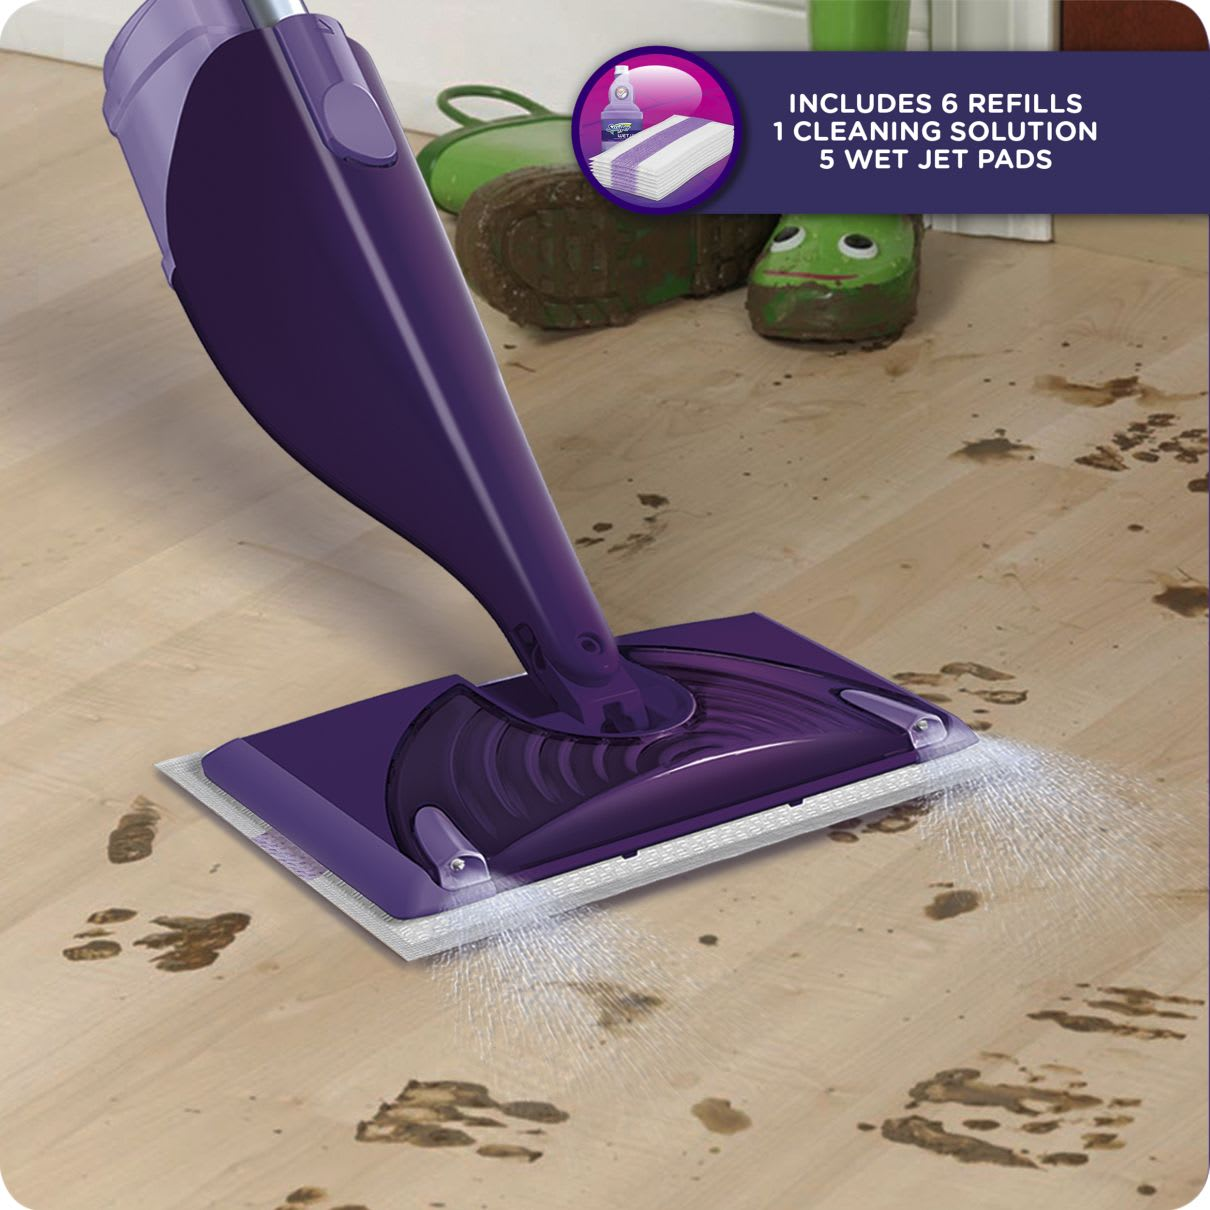 Swiffer WetJet Starter Kit Includes